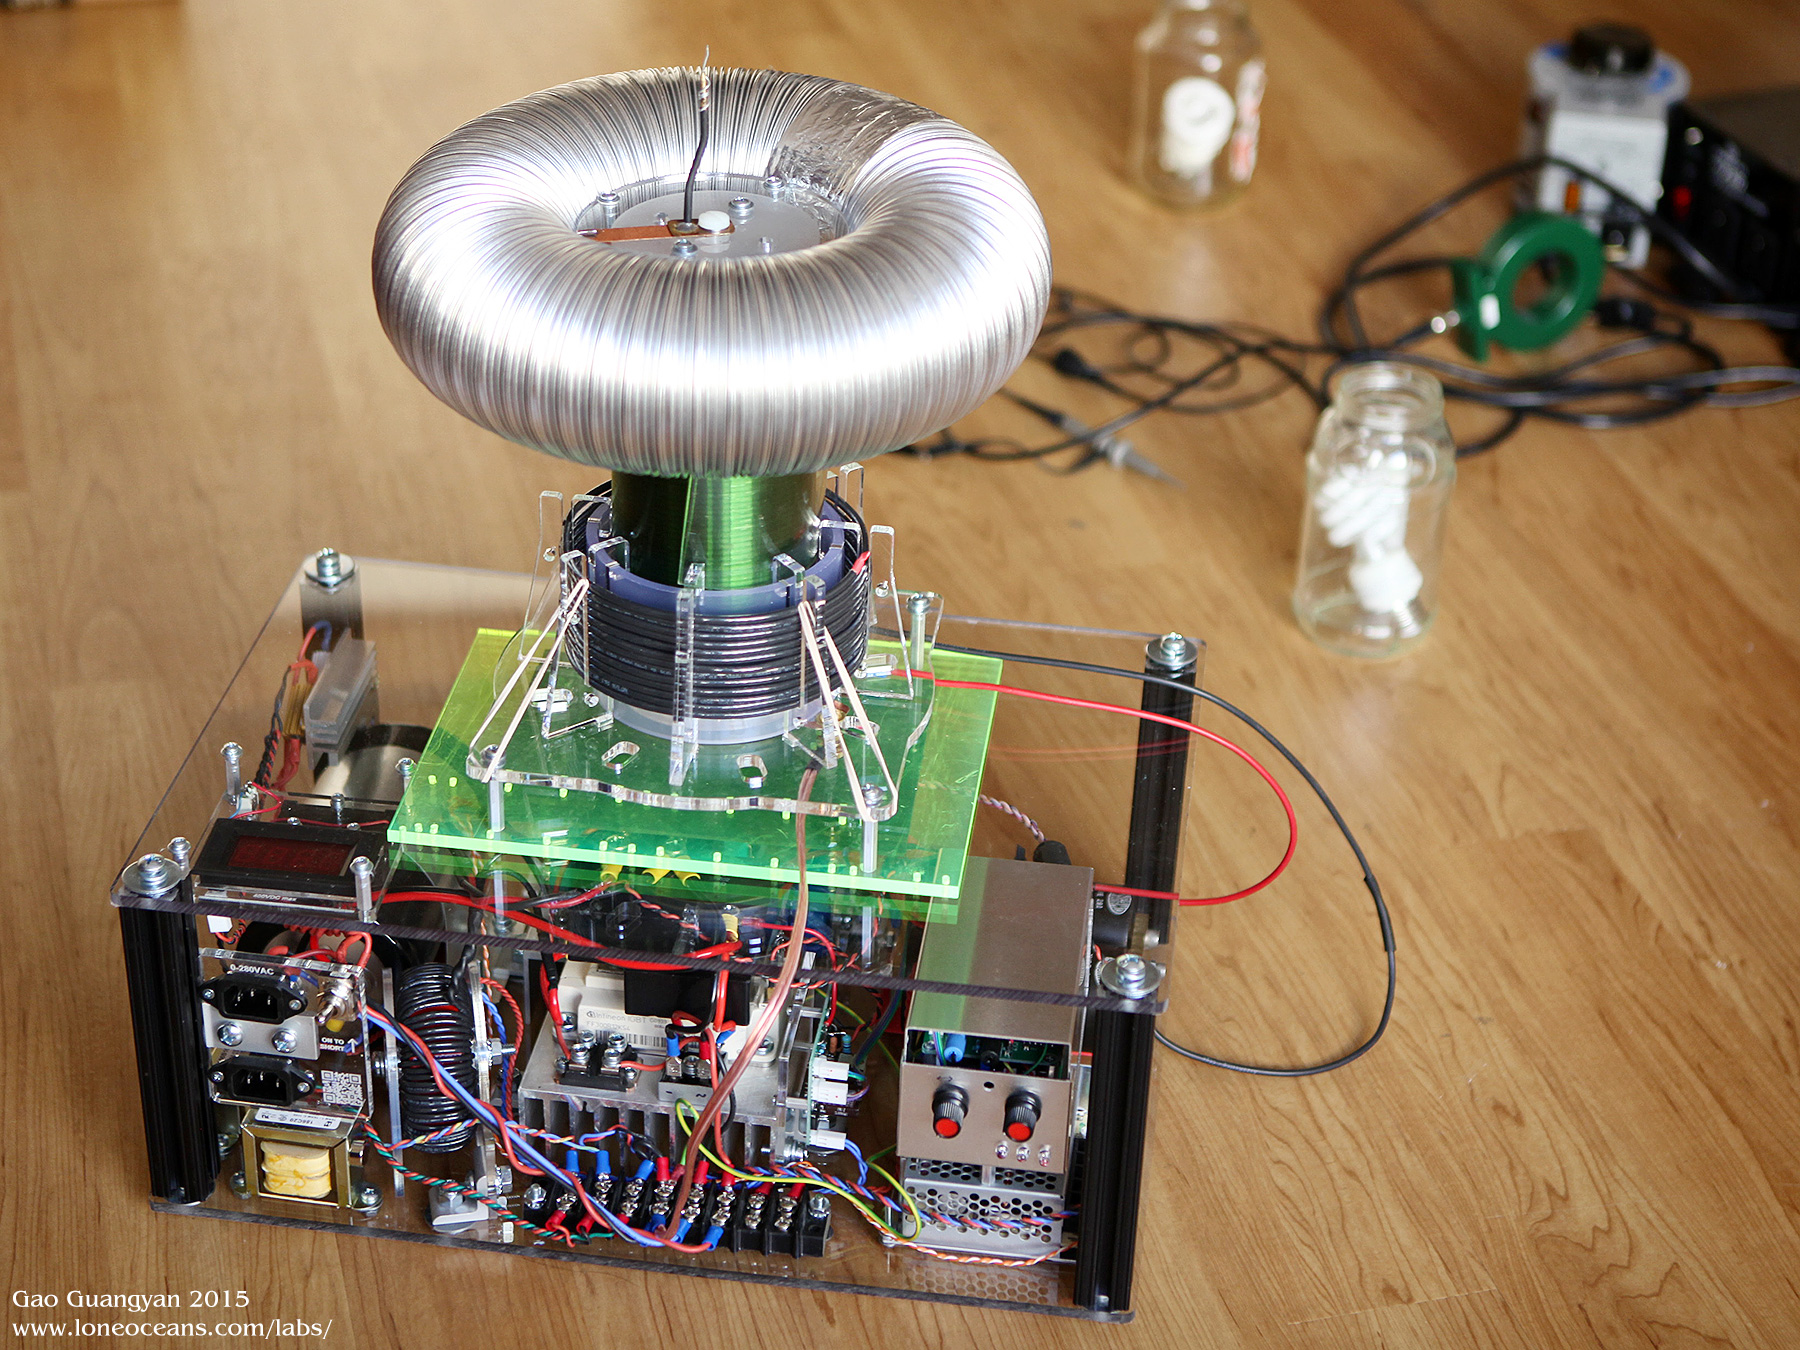 Qcw Tesla Coil V15 Transformer Driver On Induction Heater Schematic Diagram A Box For The